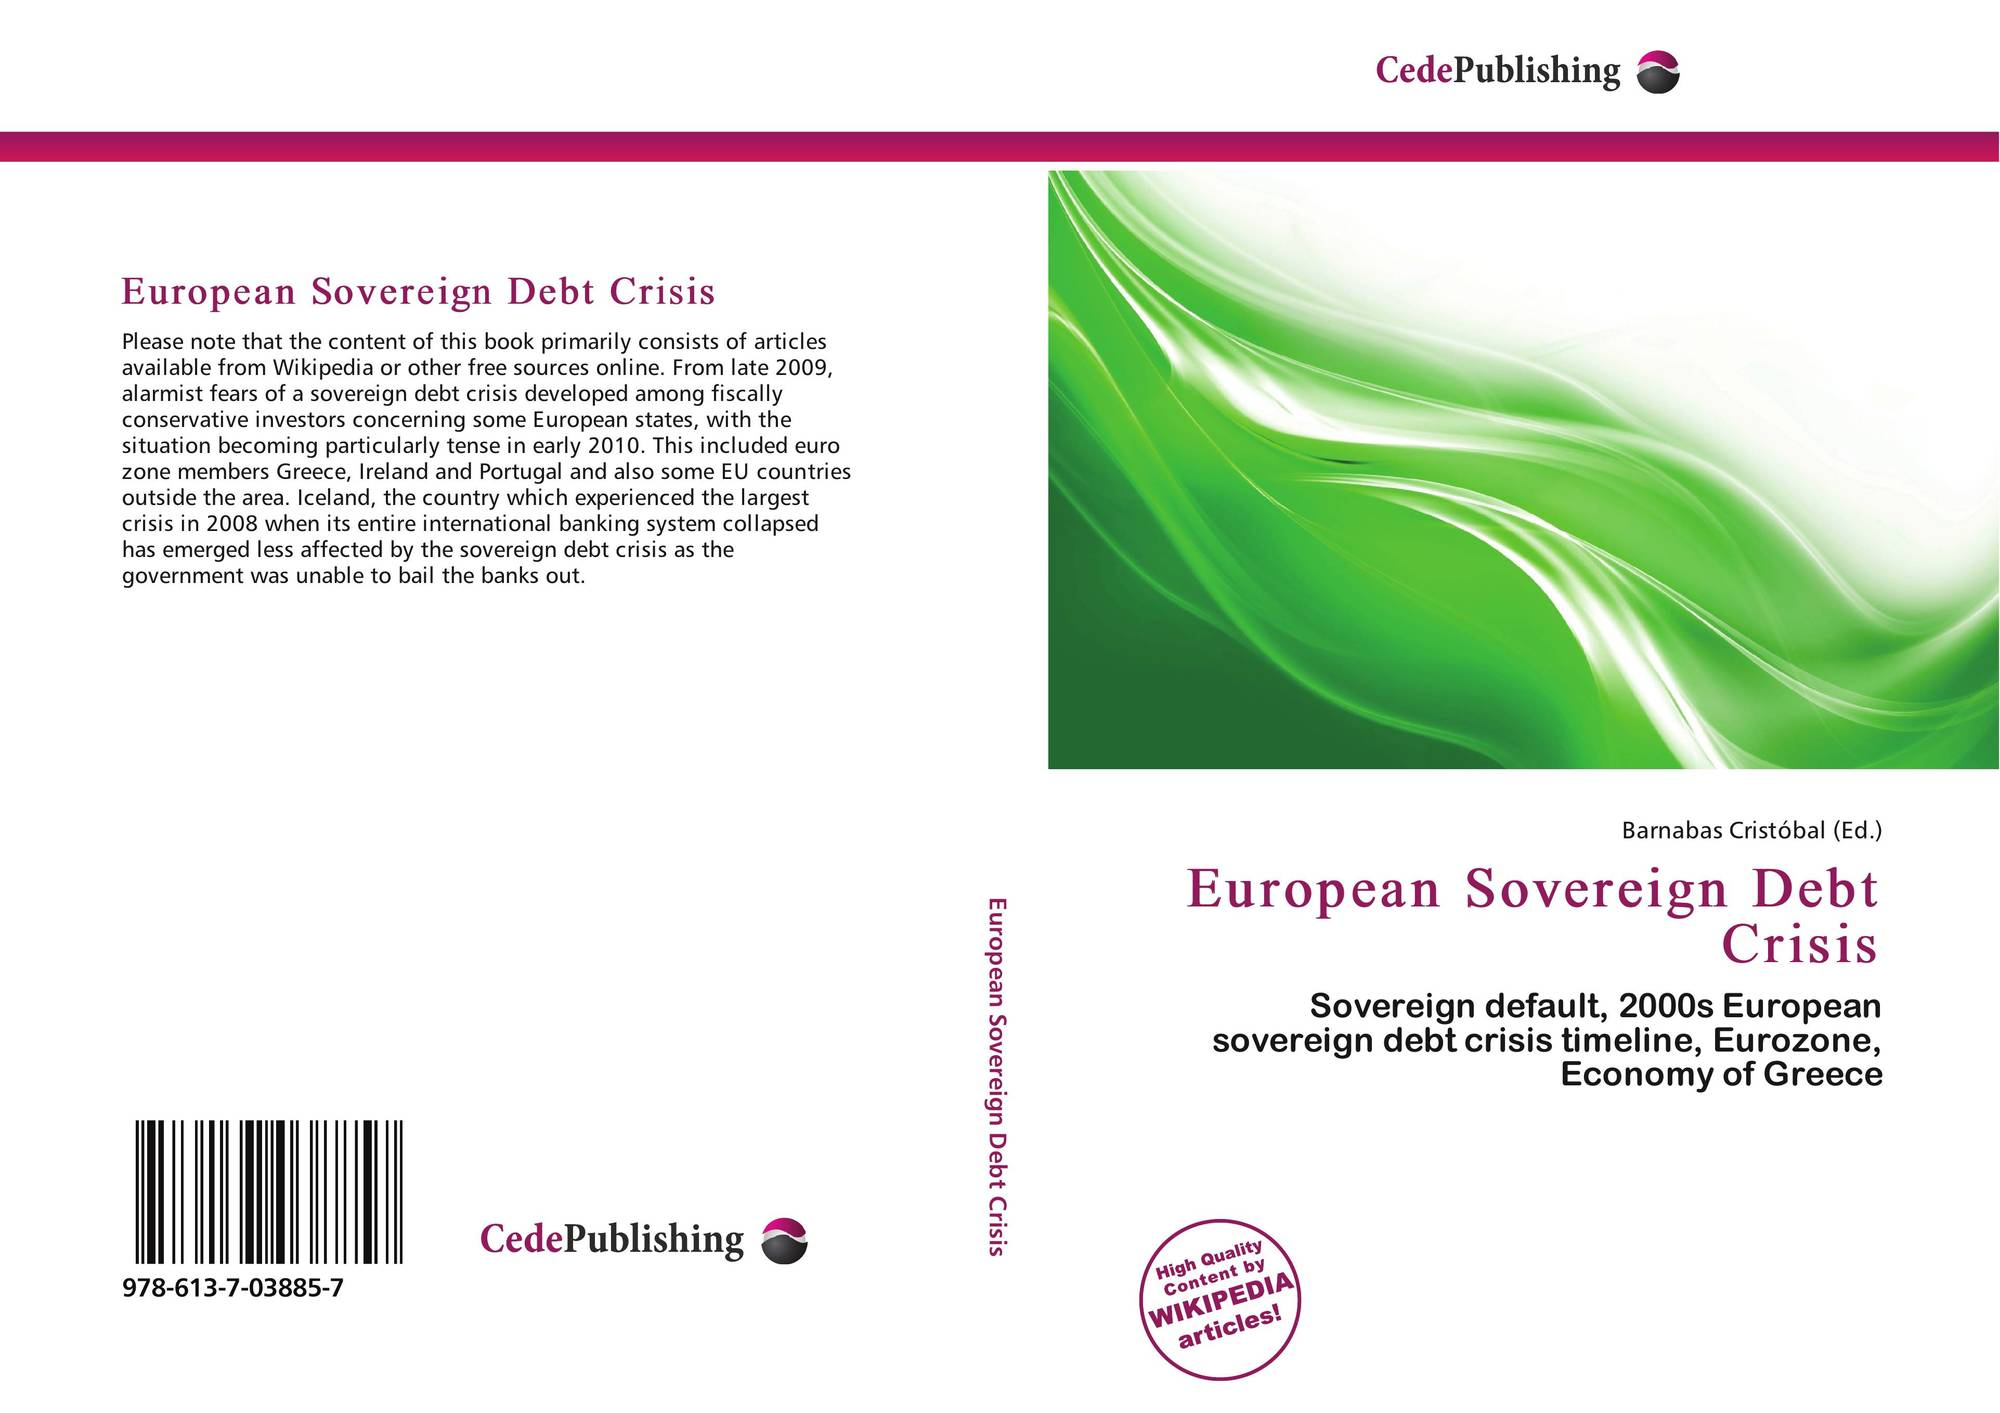 an introduction to the history of the issue of greek sovereign debt crisis A timeline of the debt crisis of the eurozone, from the creation of the currency in 1999 to the current greek woes.